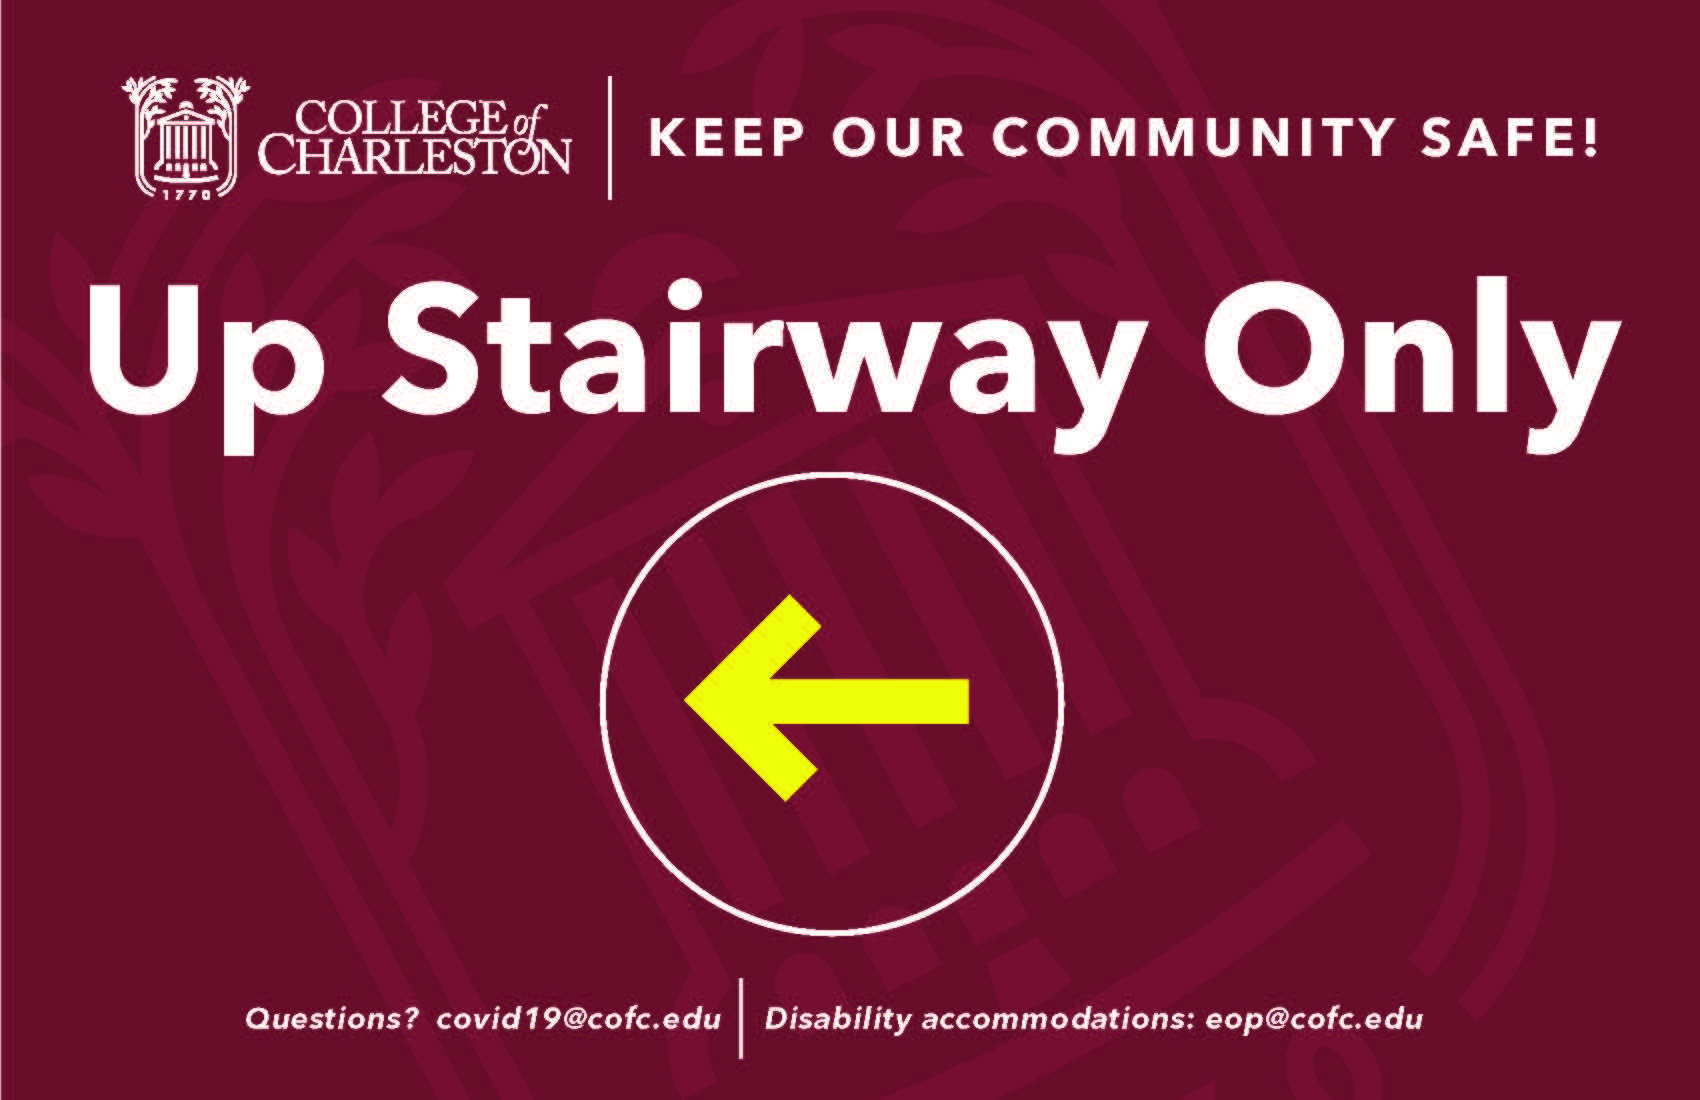 image of signage for up stairway only